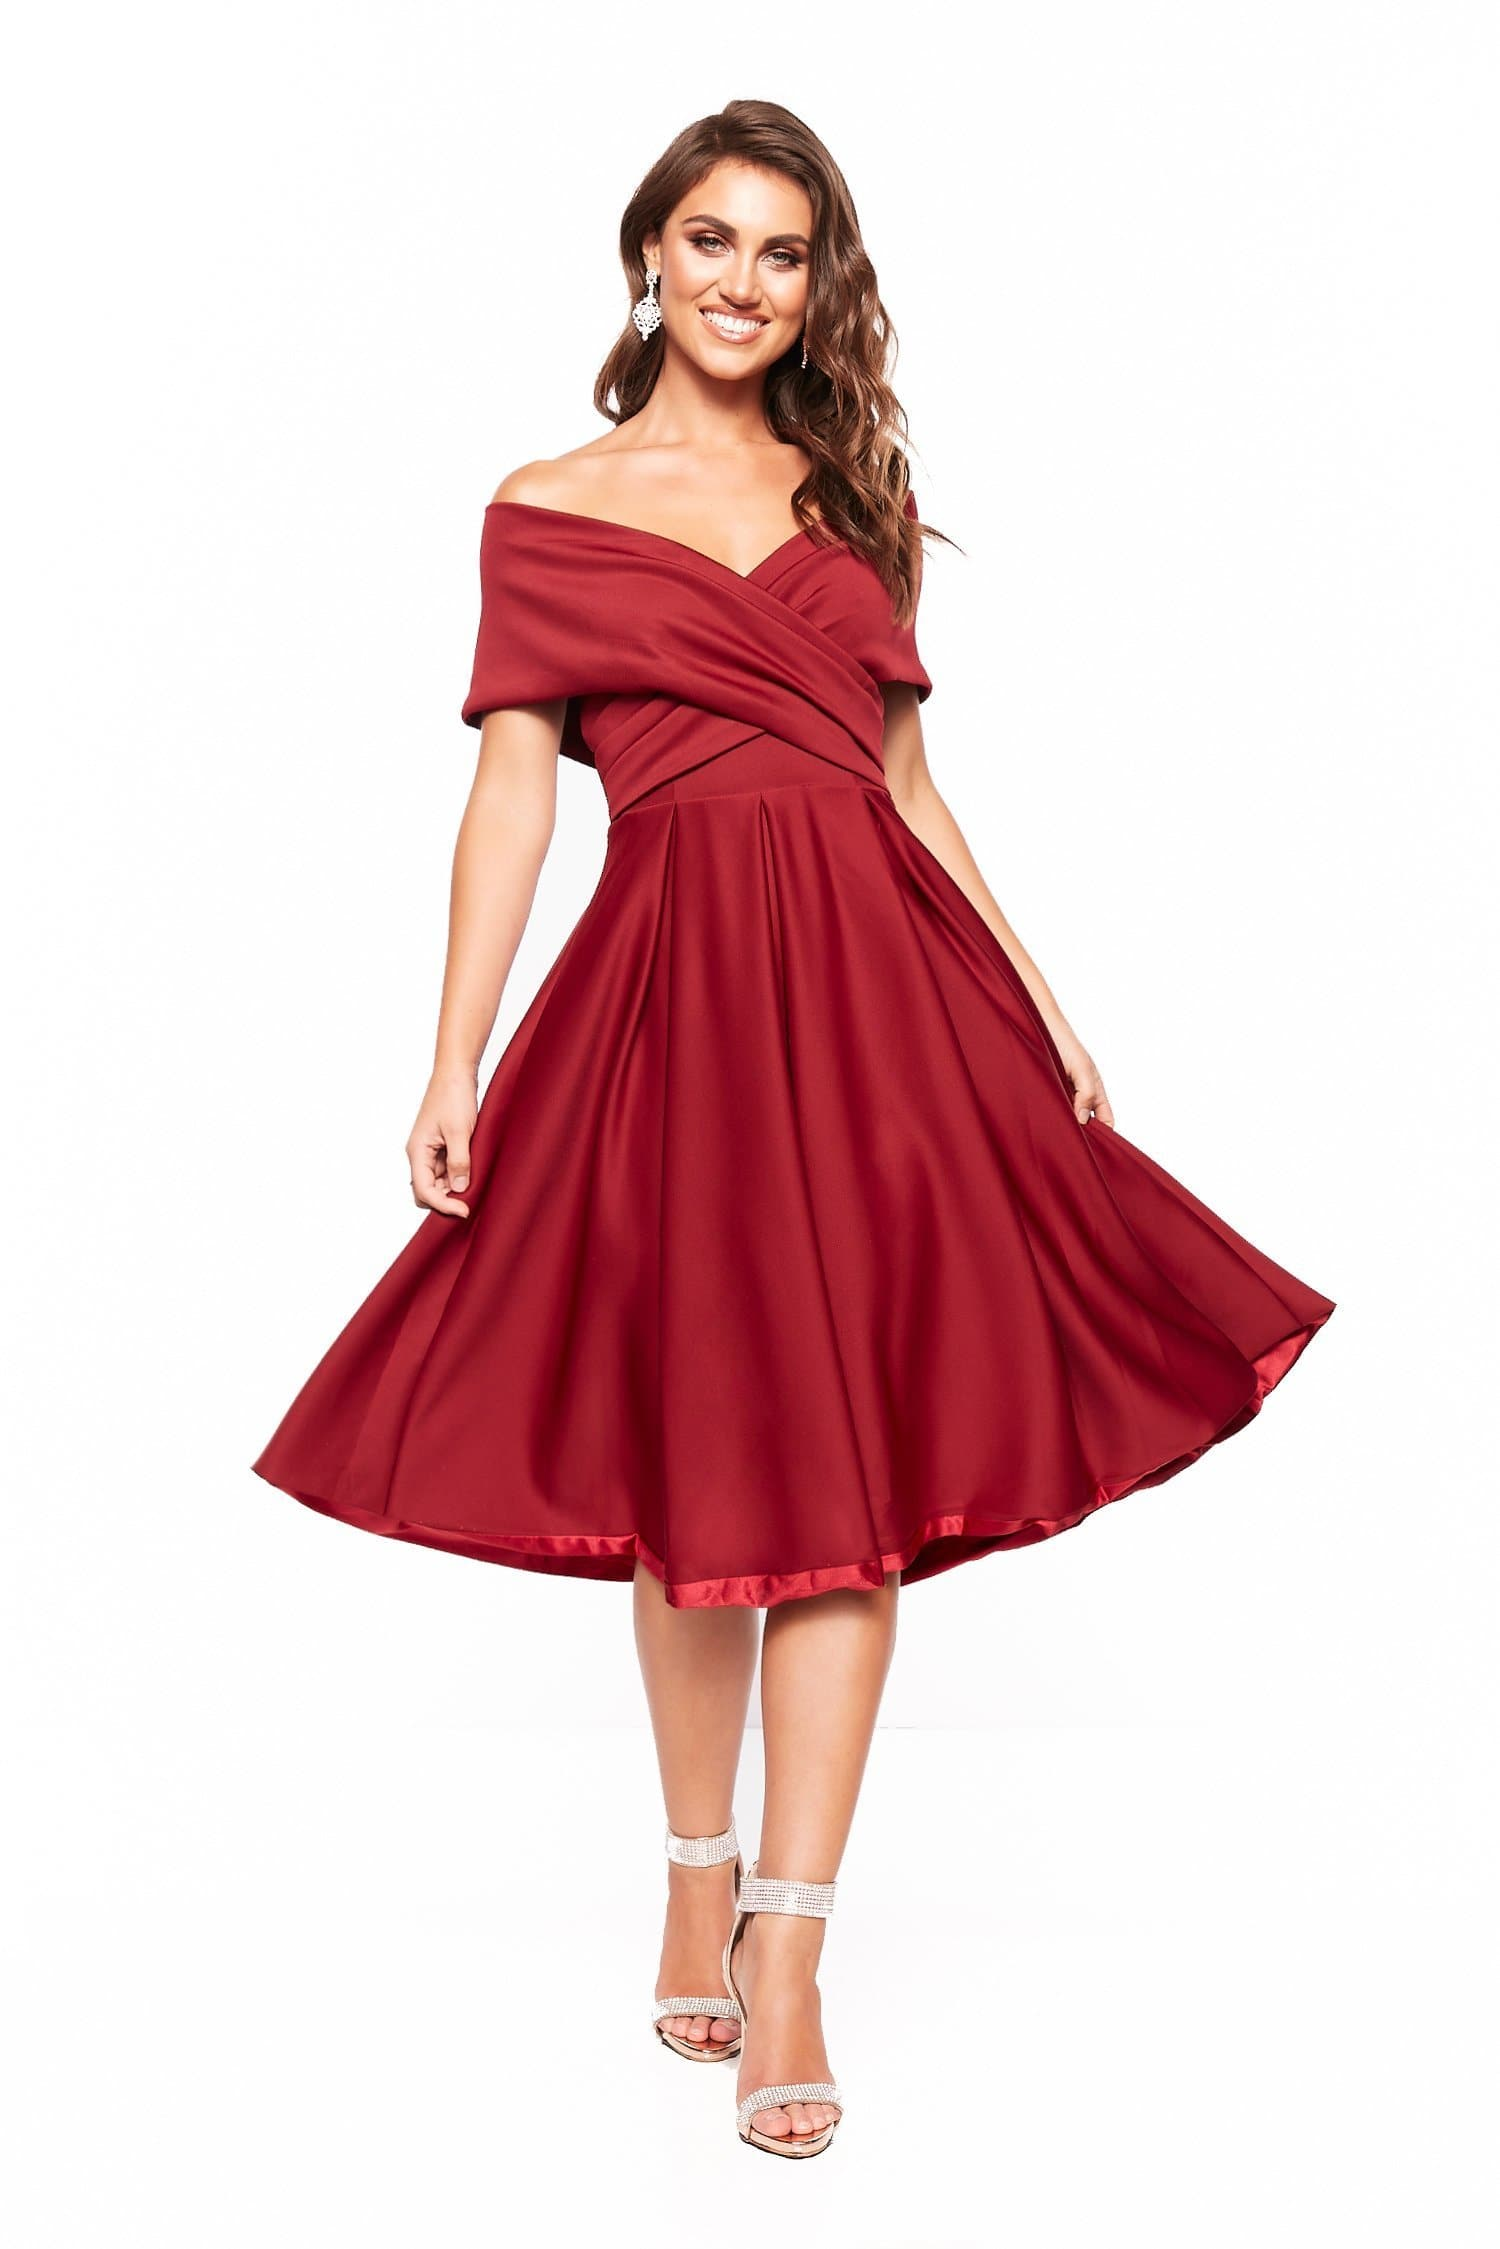 5528c10745d8 A N Elyse Flowing Off-Shoulder Cocktail Dress - Burgundy – A N Luxe ...